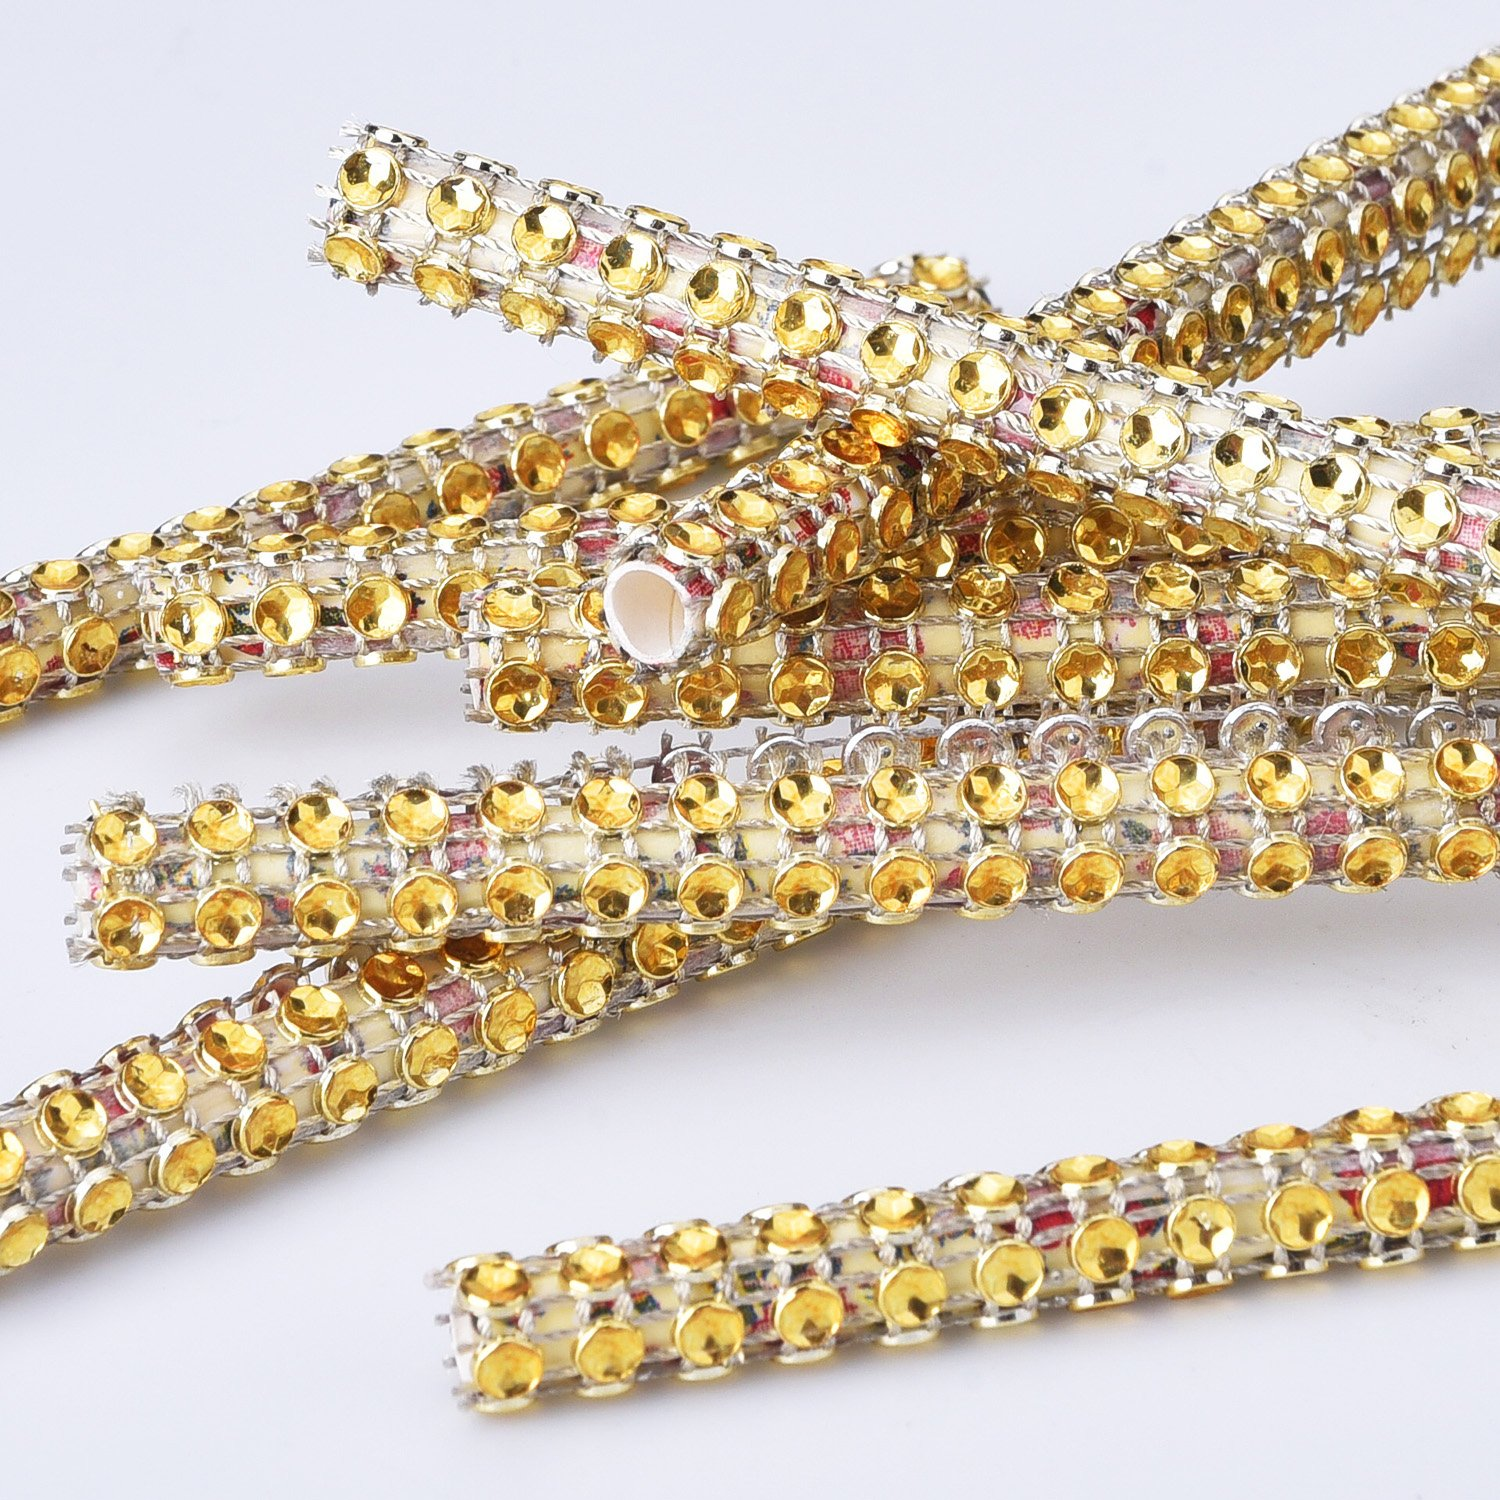 eBoot 4 Row 10 Yard Acrylic Rhinestone Diamond Ribbon for Wedding Cakes Birthday Decorations Baby Shower Events and Arts and Crafts Projects Gold